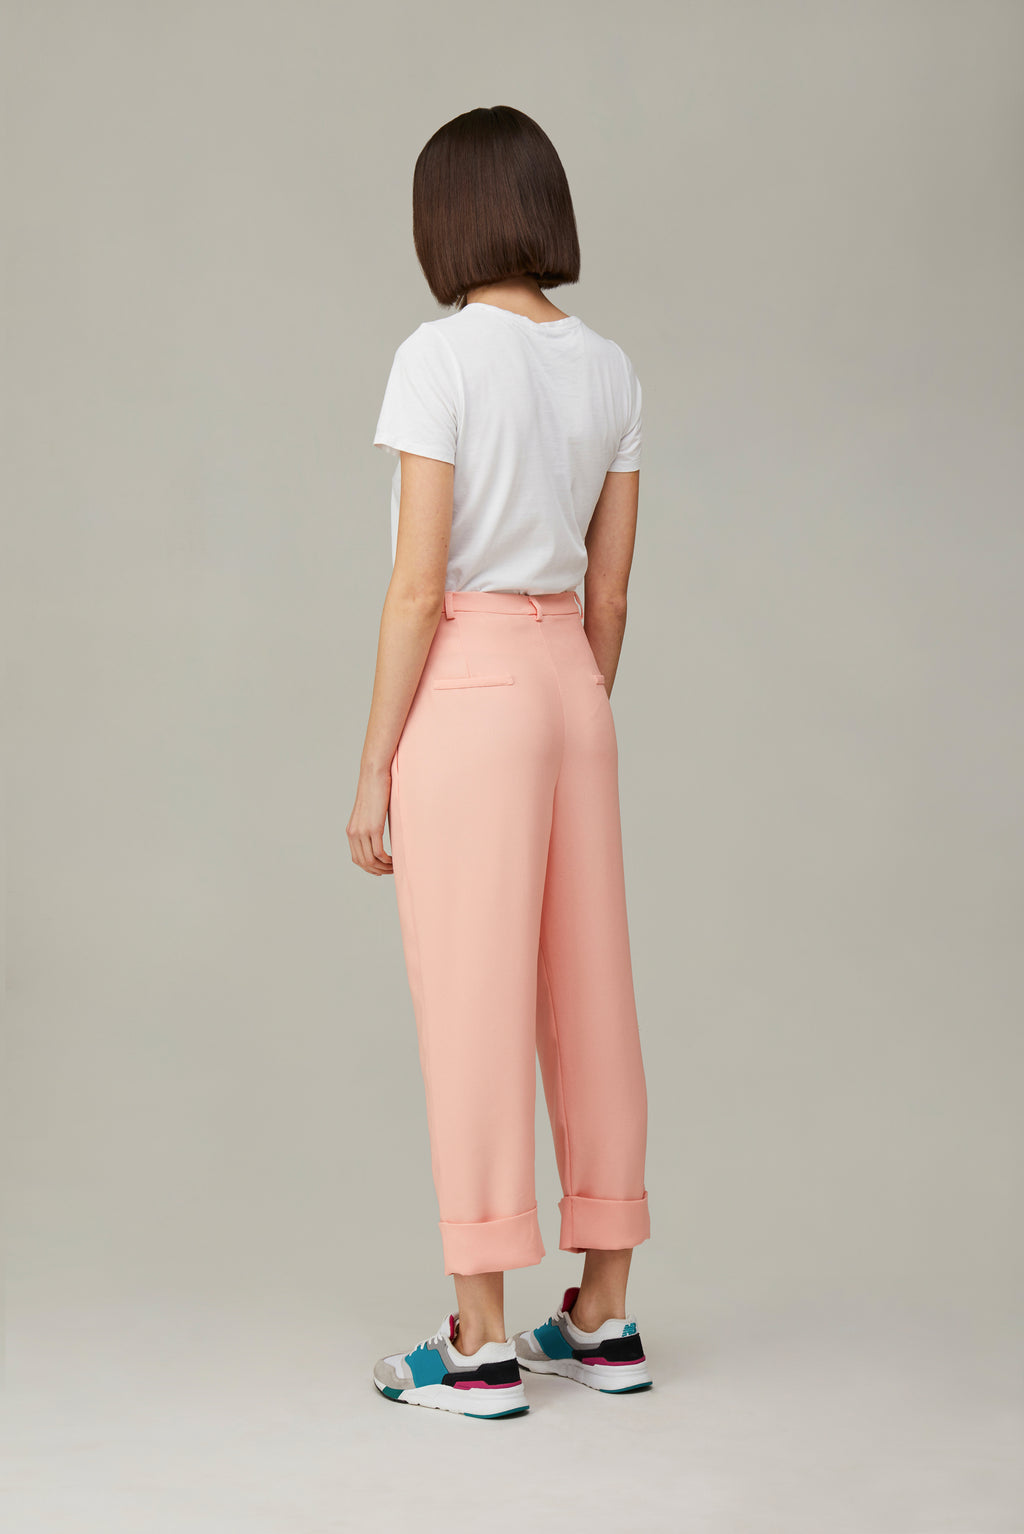 The Salmon Boyfriend Pants